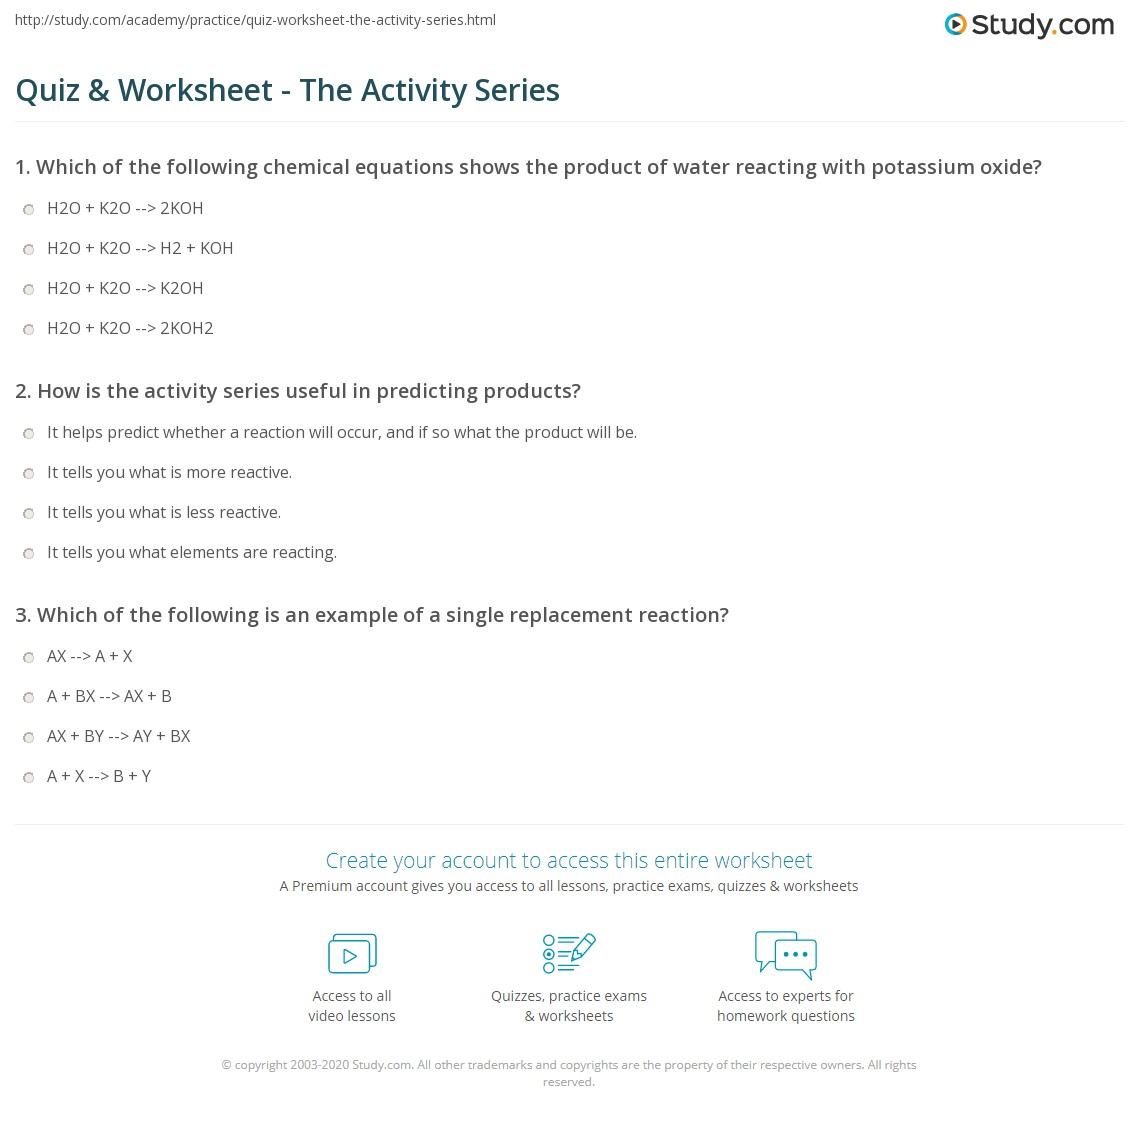 Aldiablosus  Gorgeous Quiz Amp Worksheet  The Activity Series  Studycom With Licious Print The Activity Series Predicting Products Of Single Displacement Reactions Worksheet With Cute Hand Washing Worksheet Also Worksheet For Year  In Addition English Grammar Worksheets For Class  And Free Math Worksheets  Kids As Well As Linear Equation Word Problems Worksheets Additionally Html Worksheets For Students From Studycom With Aldiablosus  Licious Quiz Amp Worksheet  The Activity Series  Studycom With Cute Print The Activity Series Predicting Products Of Single Displacement Reactions Worksheet And Gorgeous Hand Washing Worksheet Also Worksheet For Year  In Addition English Grammar Worksheets For Class  From Studycom